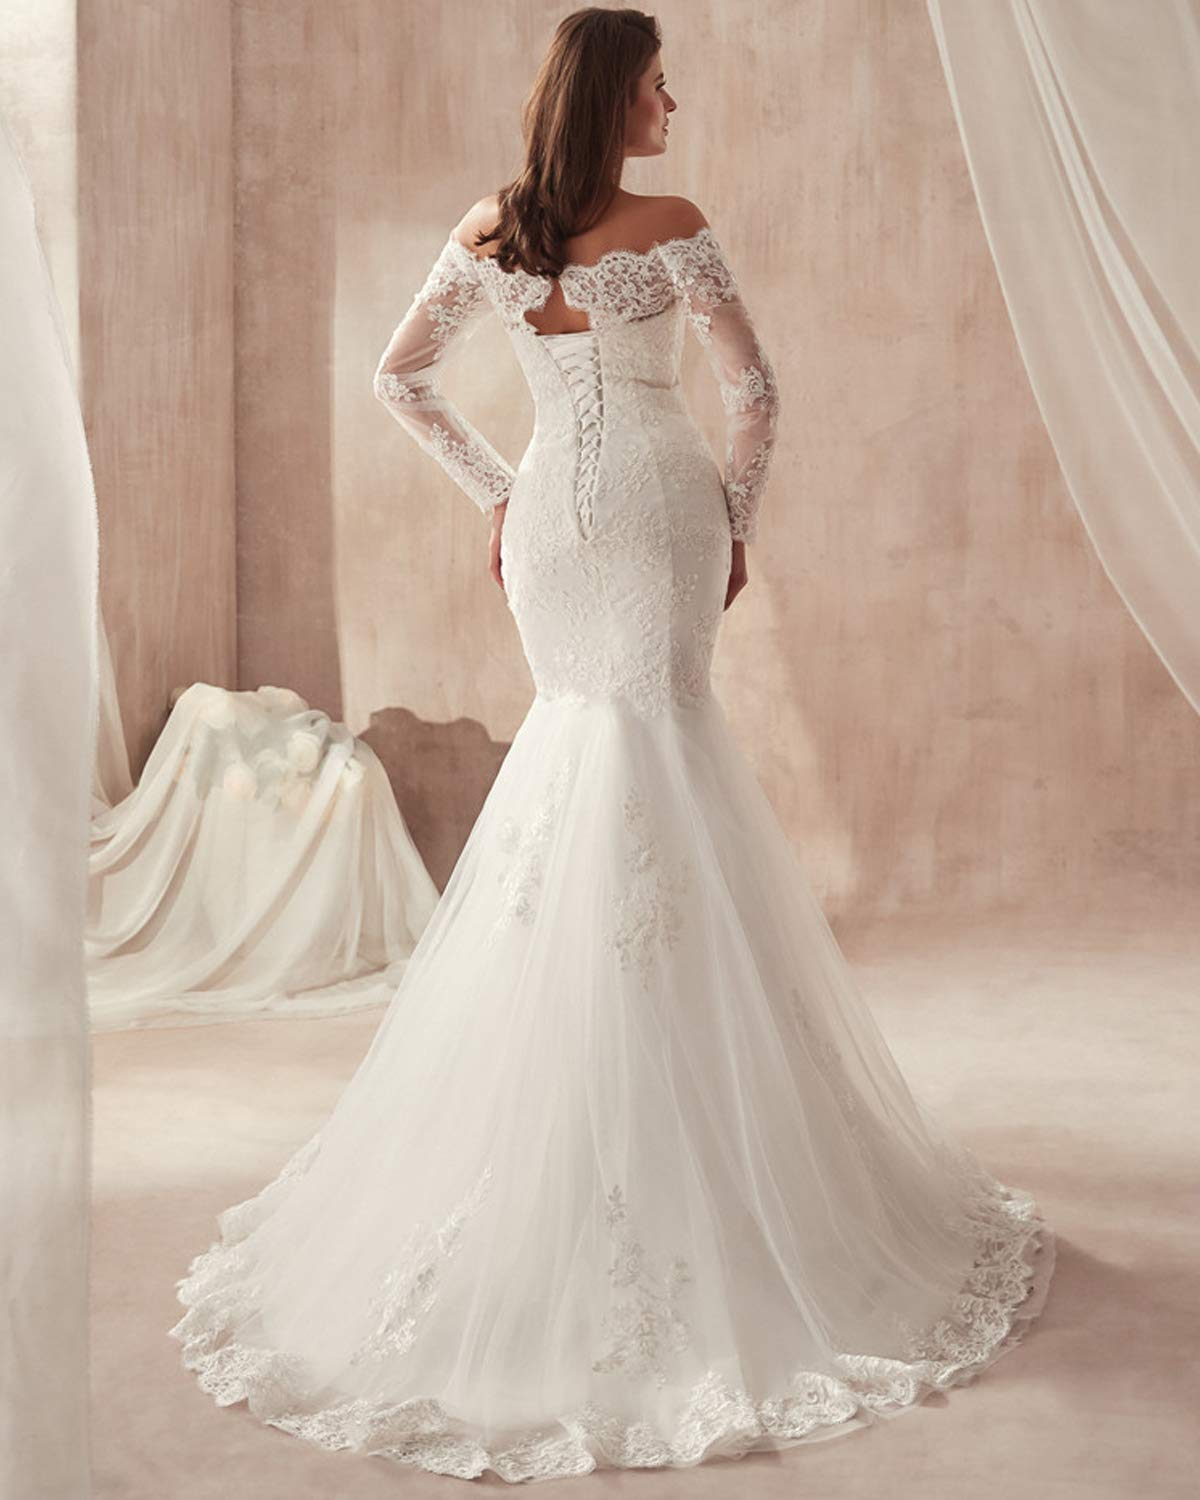 2018 Lace Mermaid Wedding Dresses Applique Beaded Long Sleeves Wedding Gowns White Us6,Pretty Black Dresses For A Wedding